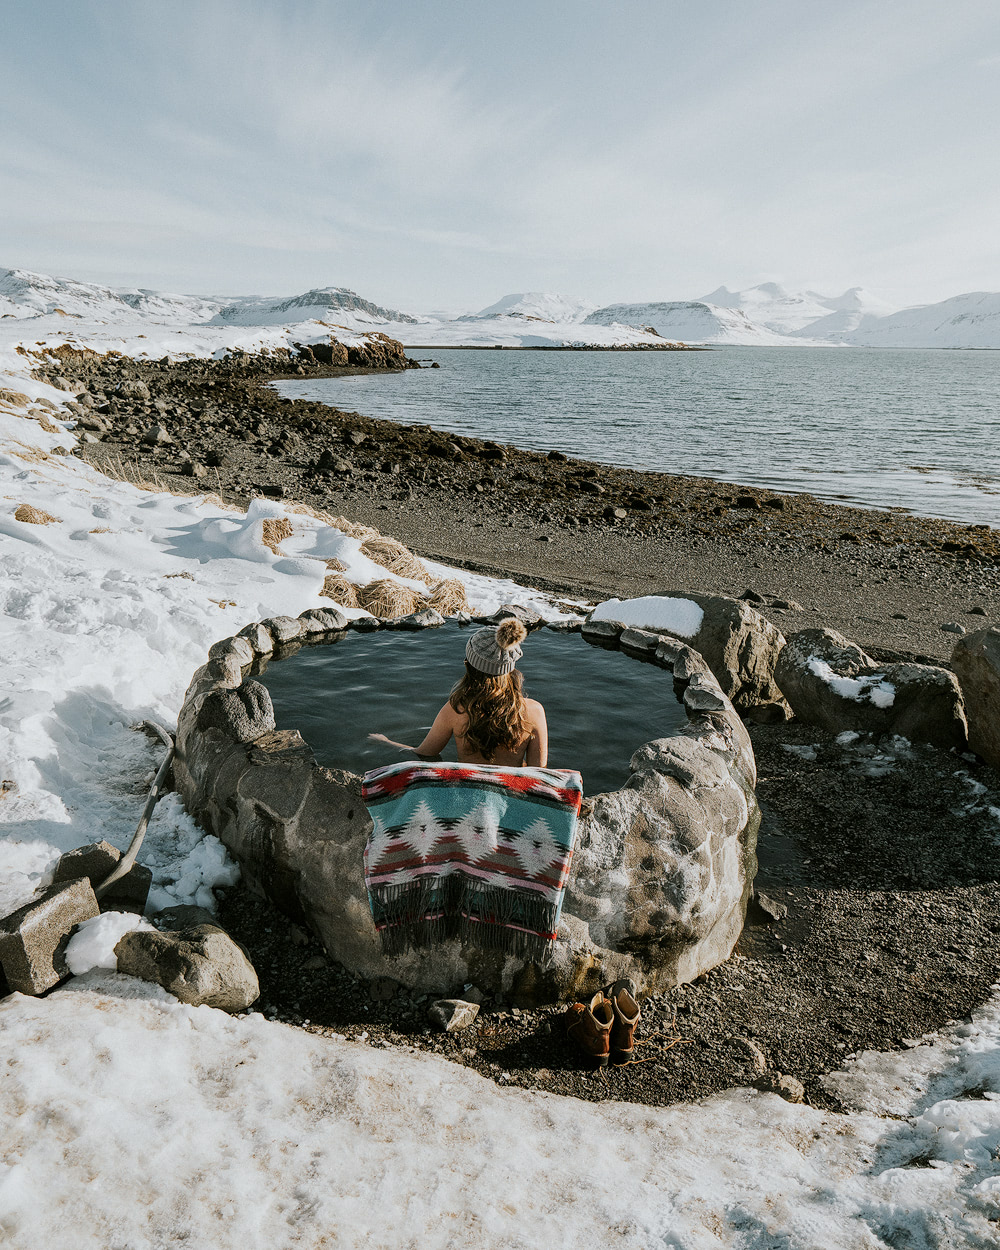 Iceland Hot Springs - Renee Roaming